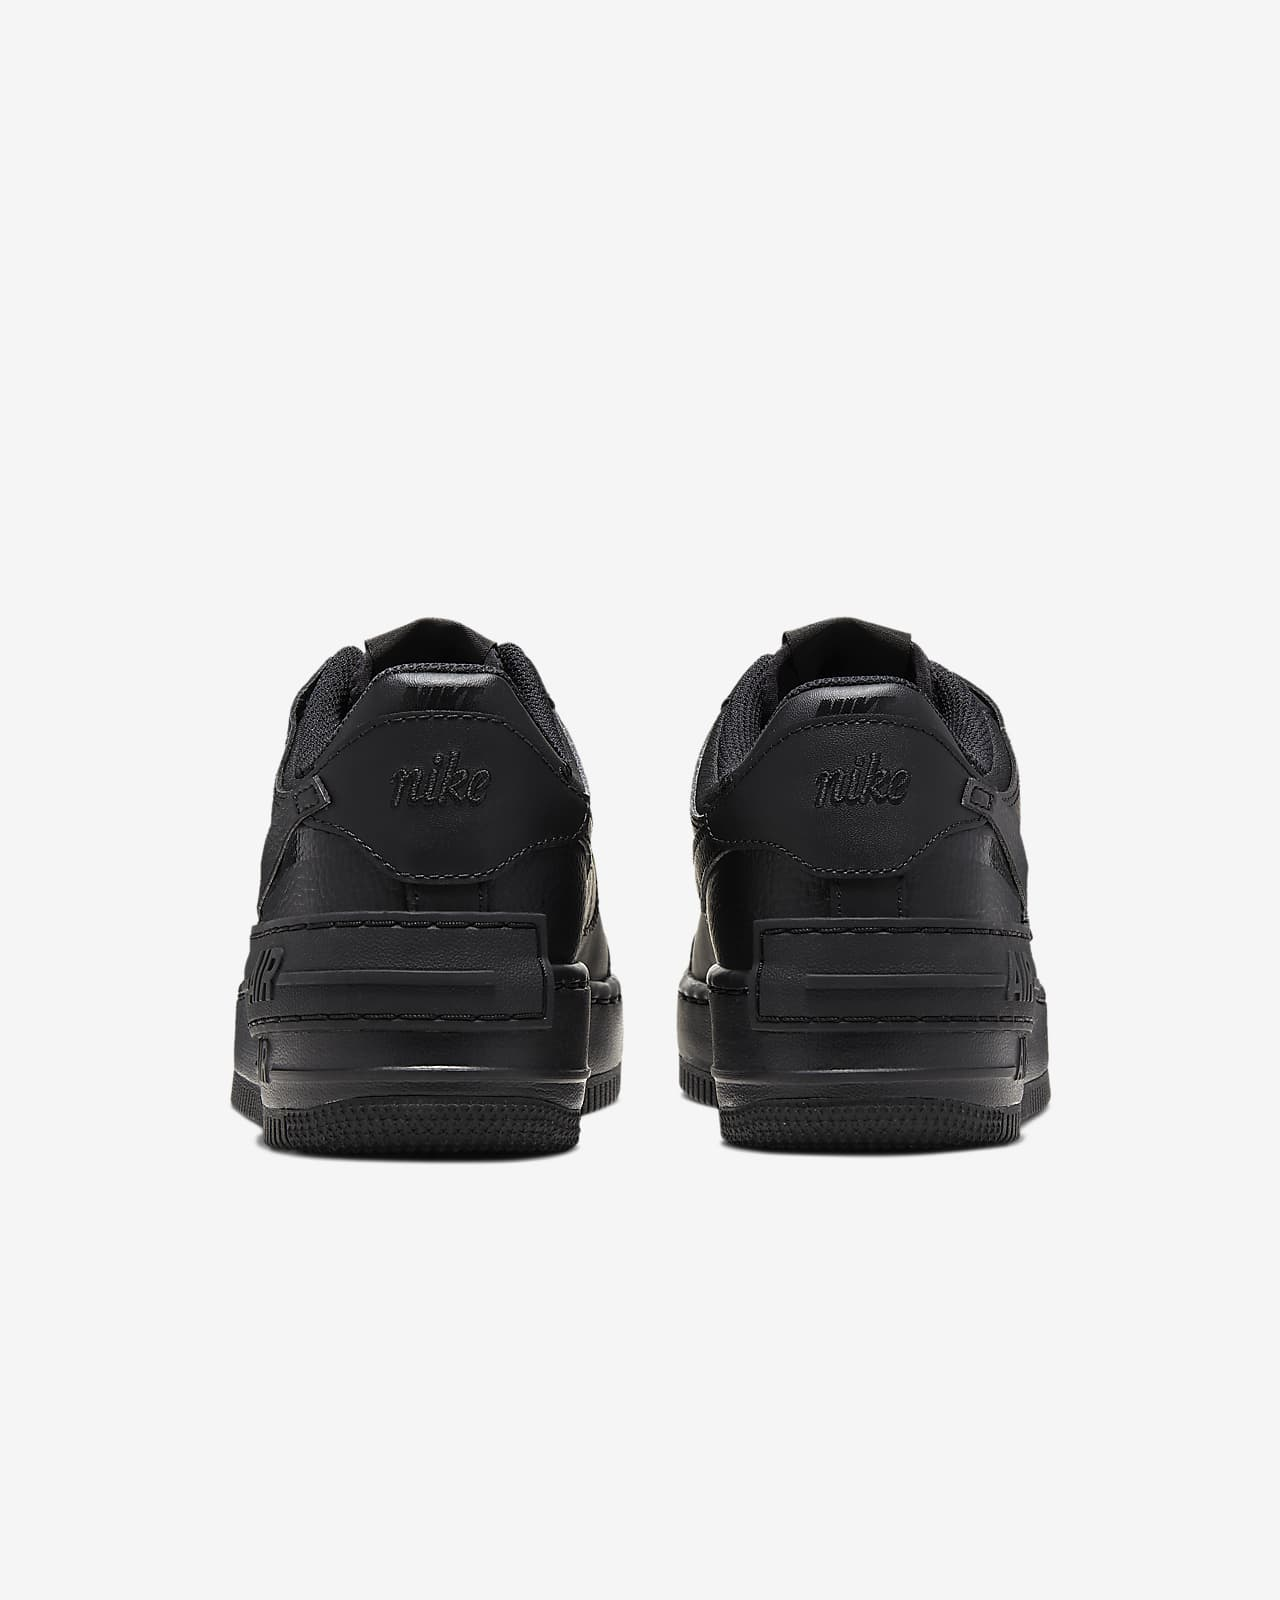 Nike Air Force 1 Shadow Women S Shoe Nike Za Nike is rolling out a newly designed silhouette titled the air force 1 shadow. nike air force 1 shadow women s shoe